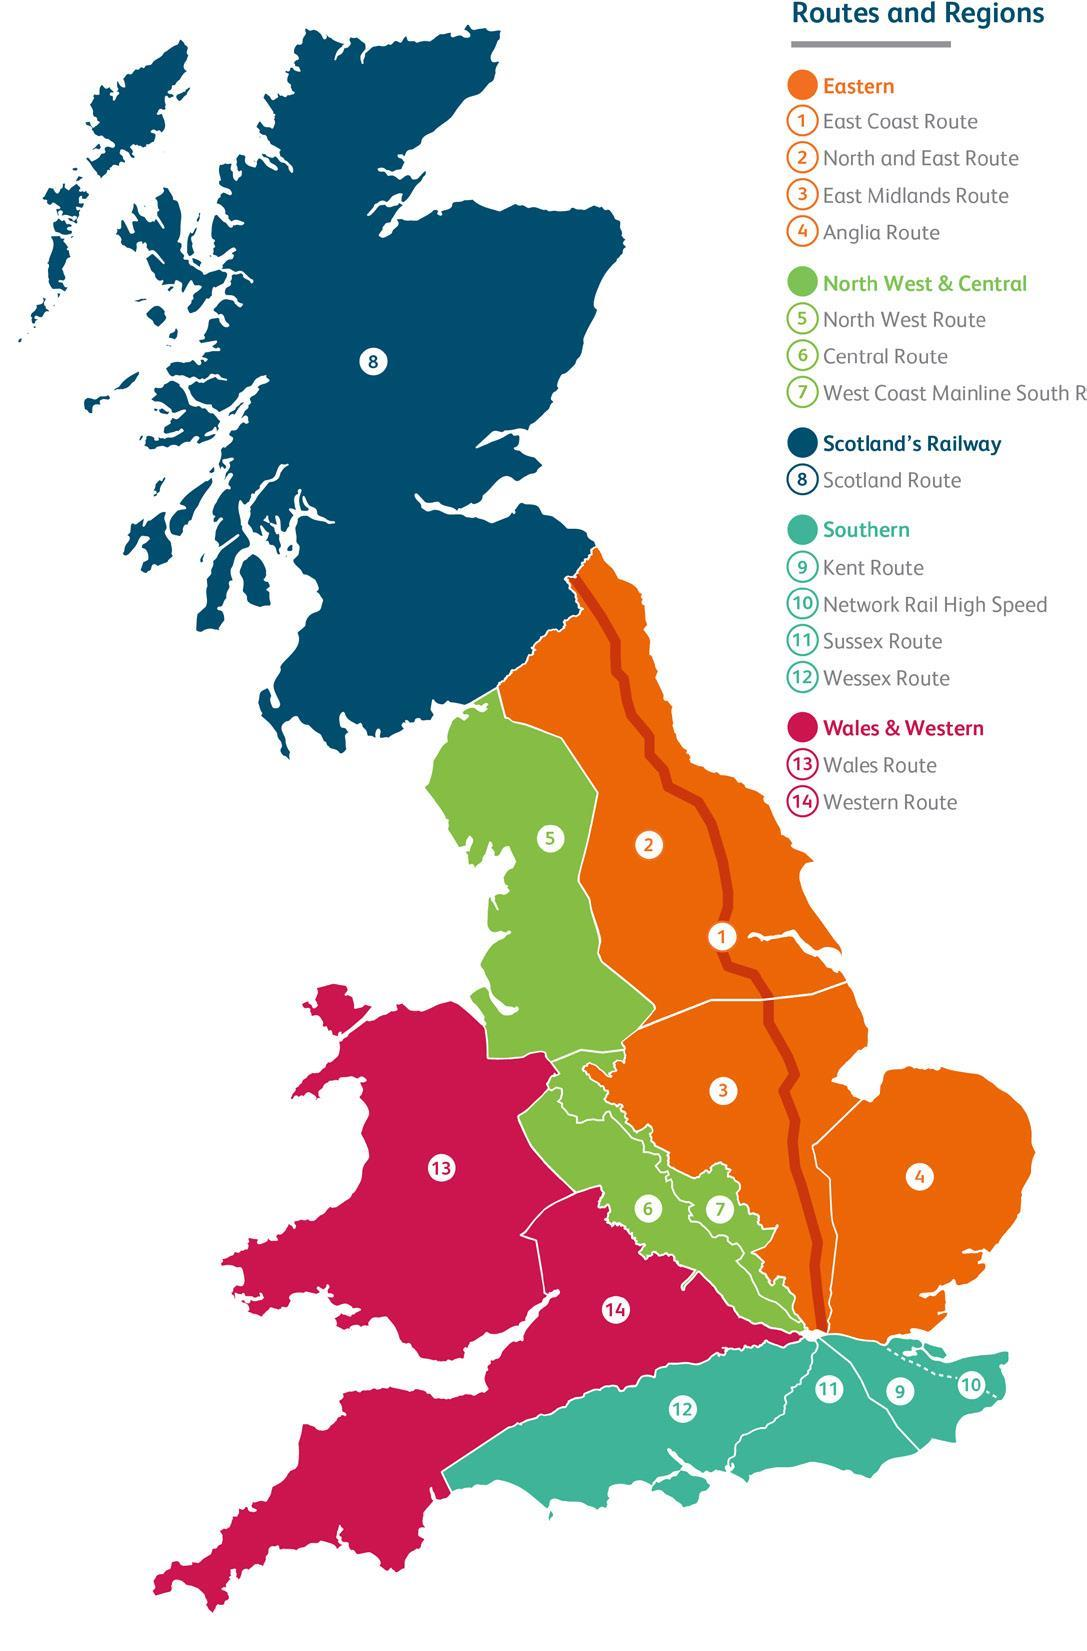 Network Rail Regions Take Over Project Delivery